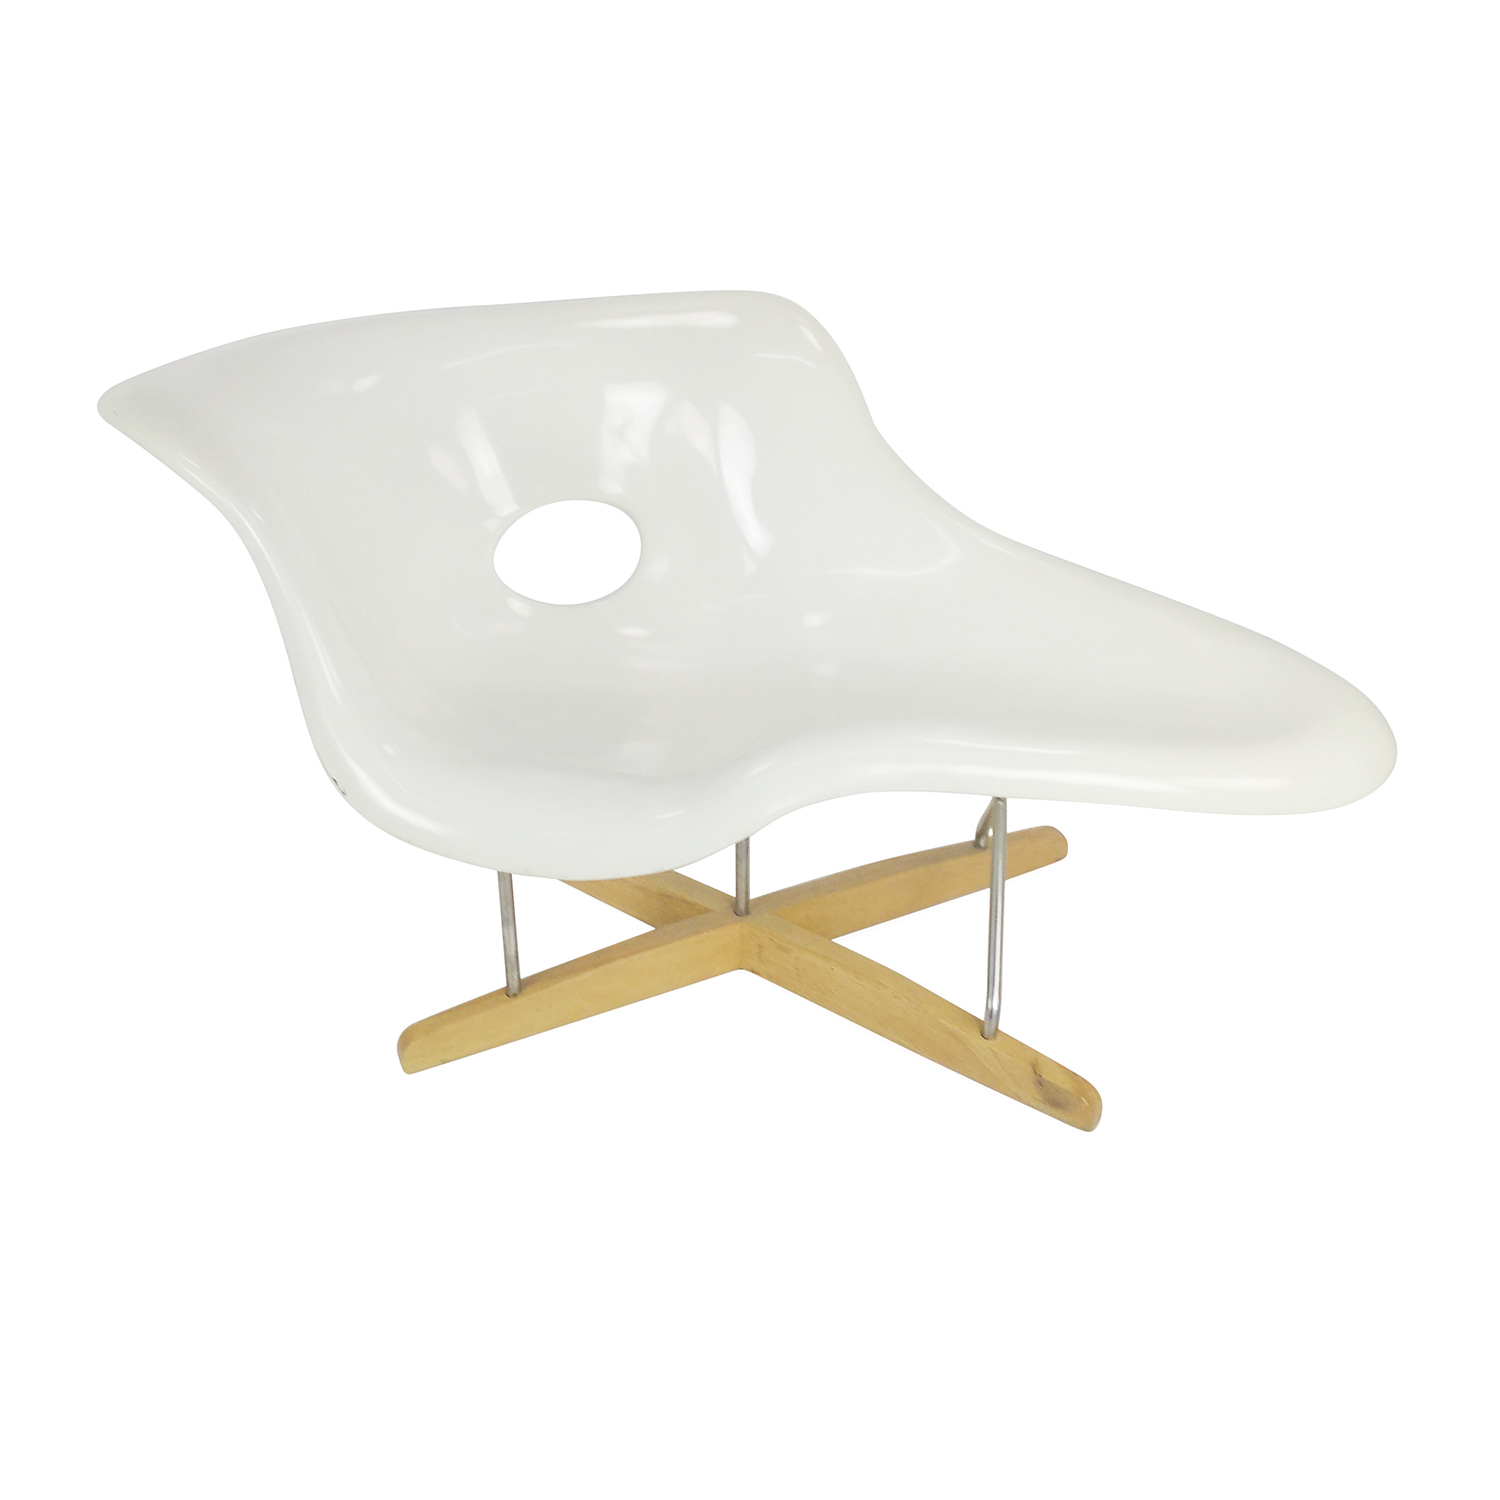 Eames Replica of La Chaise La Chaise Replica Lounge Chair Sofas